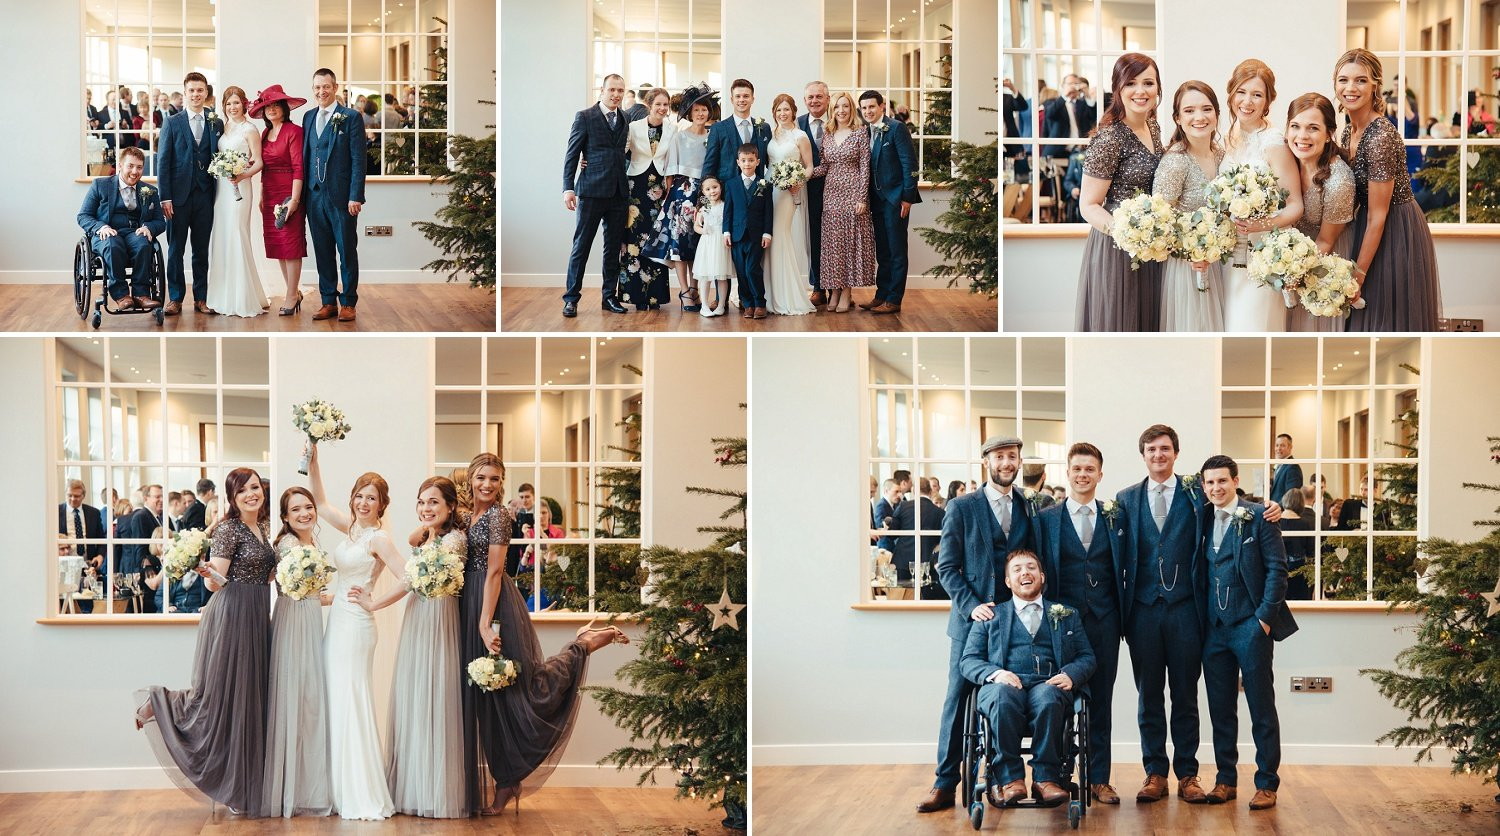 Formal photographs with parents, bridesmaids and groomsmen, indoors at Bredenbury Court